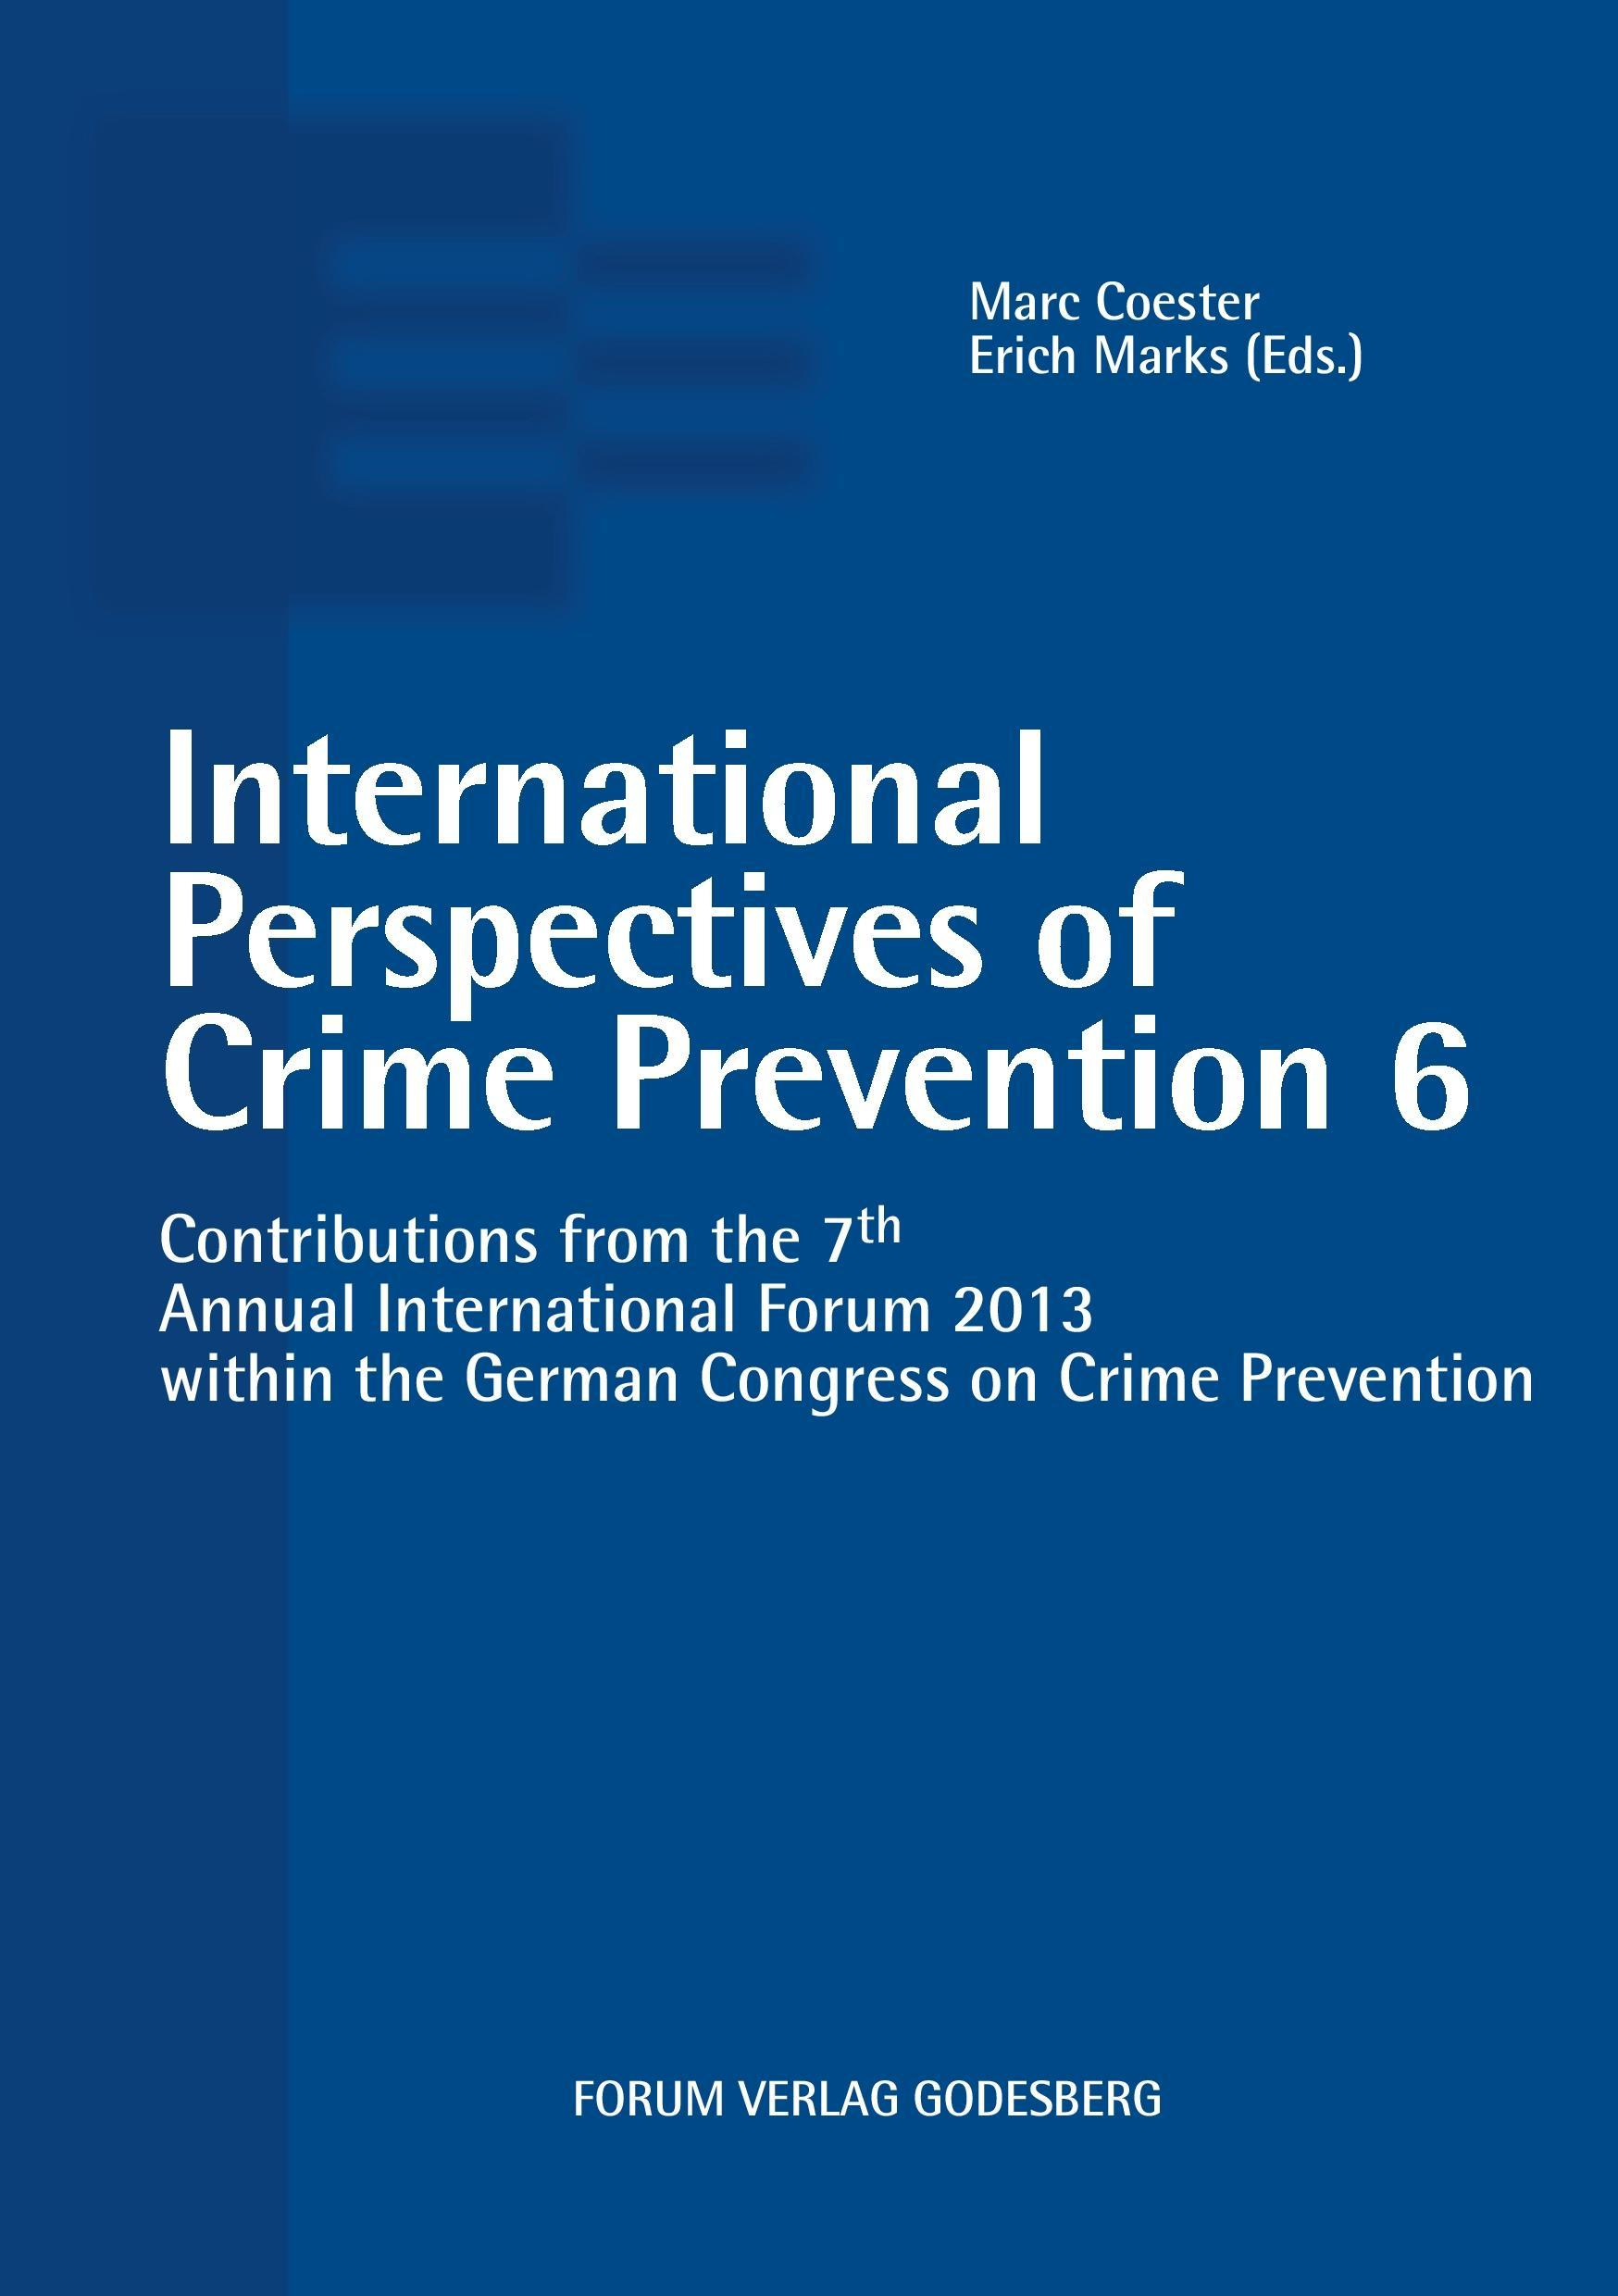 International Perspectives of Crime Prevention 6 Marc Coester Taschenbuch 2014